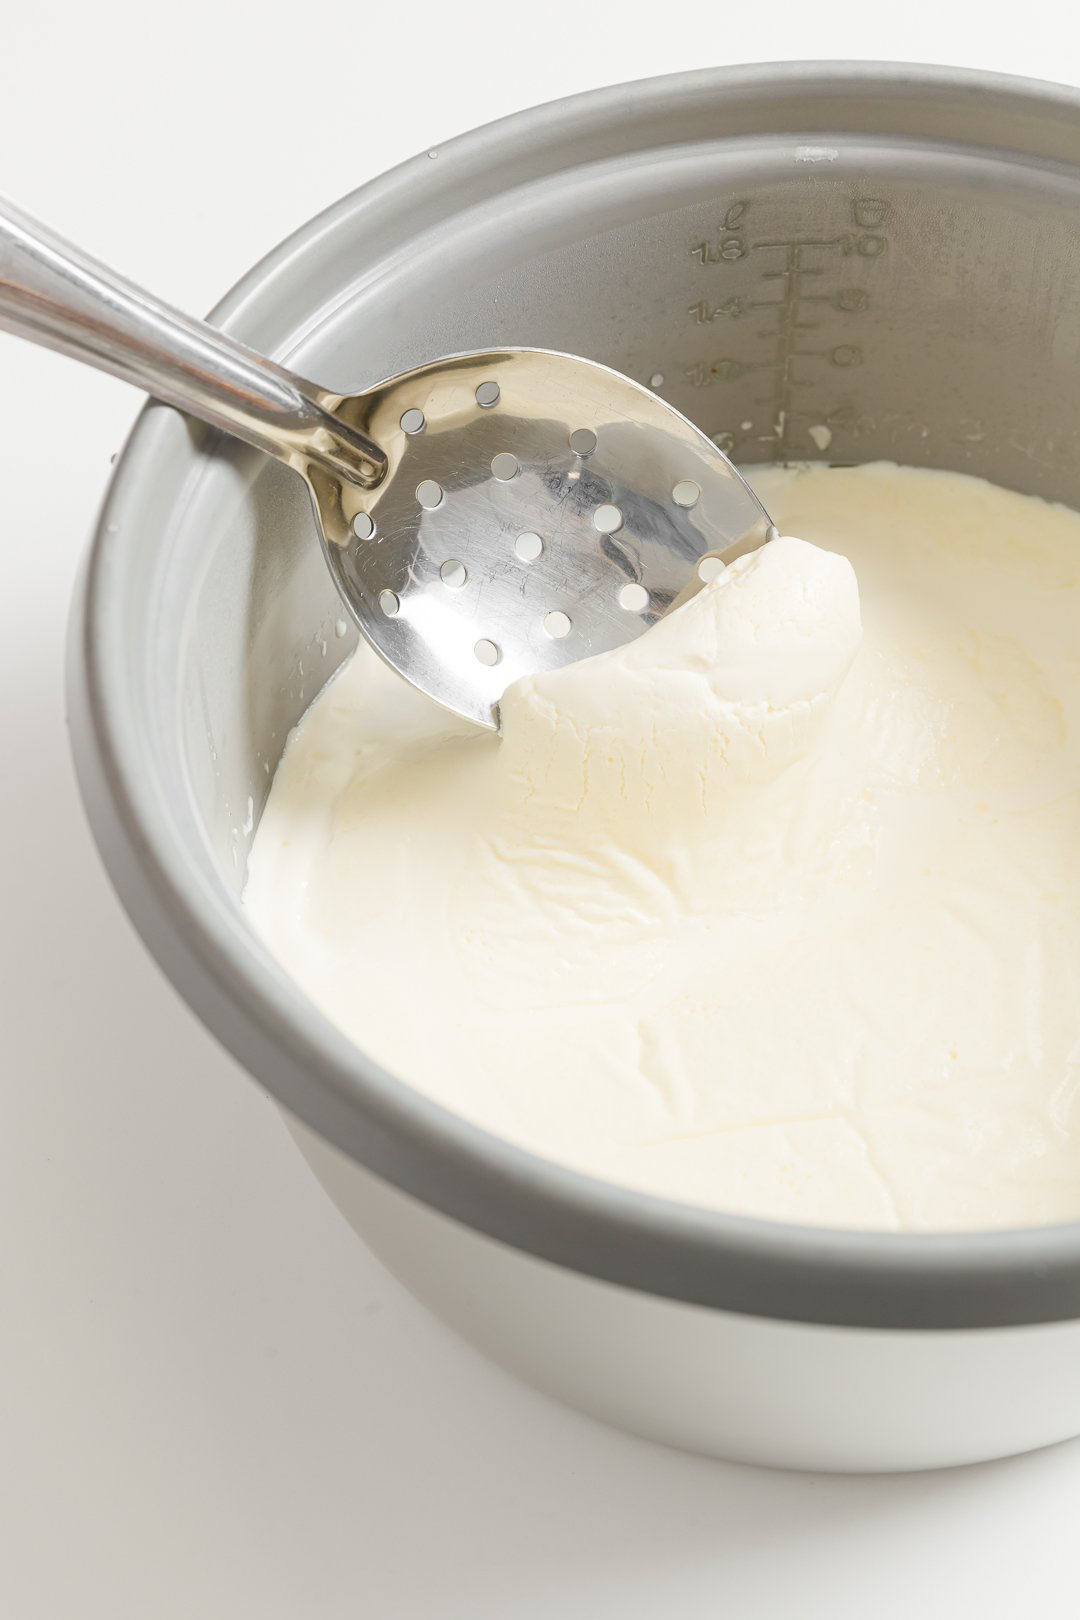 A slotted spoon skimming the clotted cream off of the top of a cream-filled rice cooker bowl